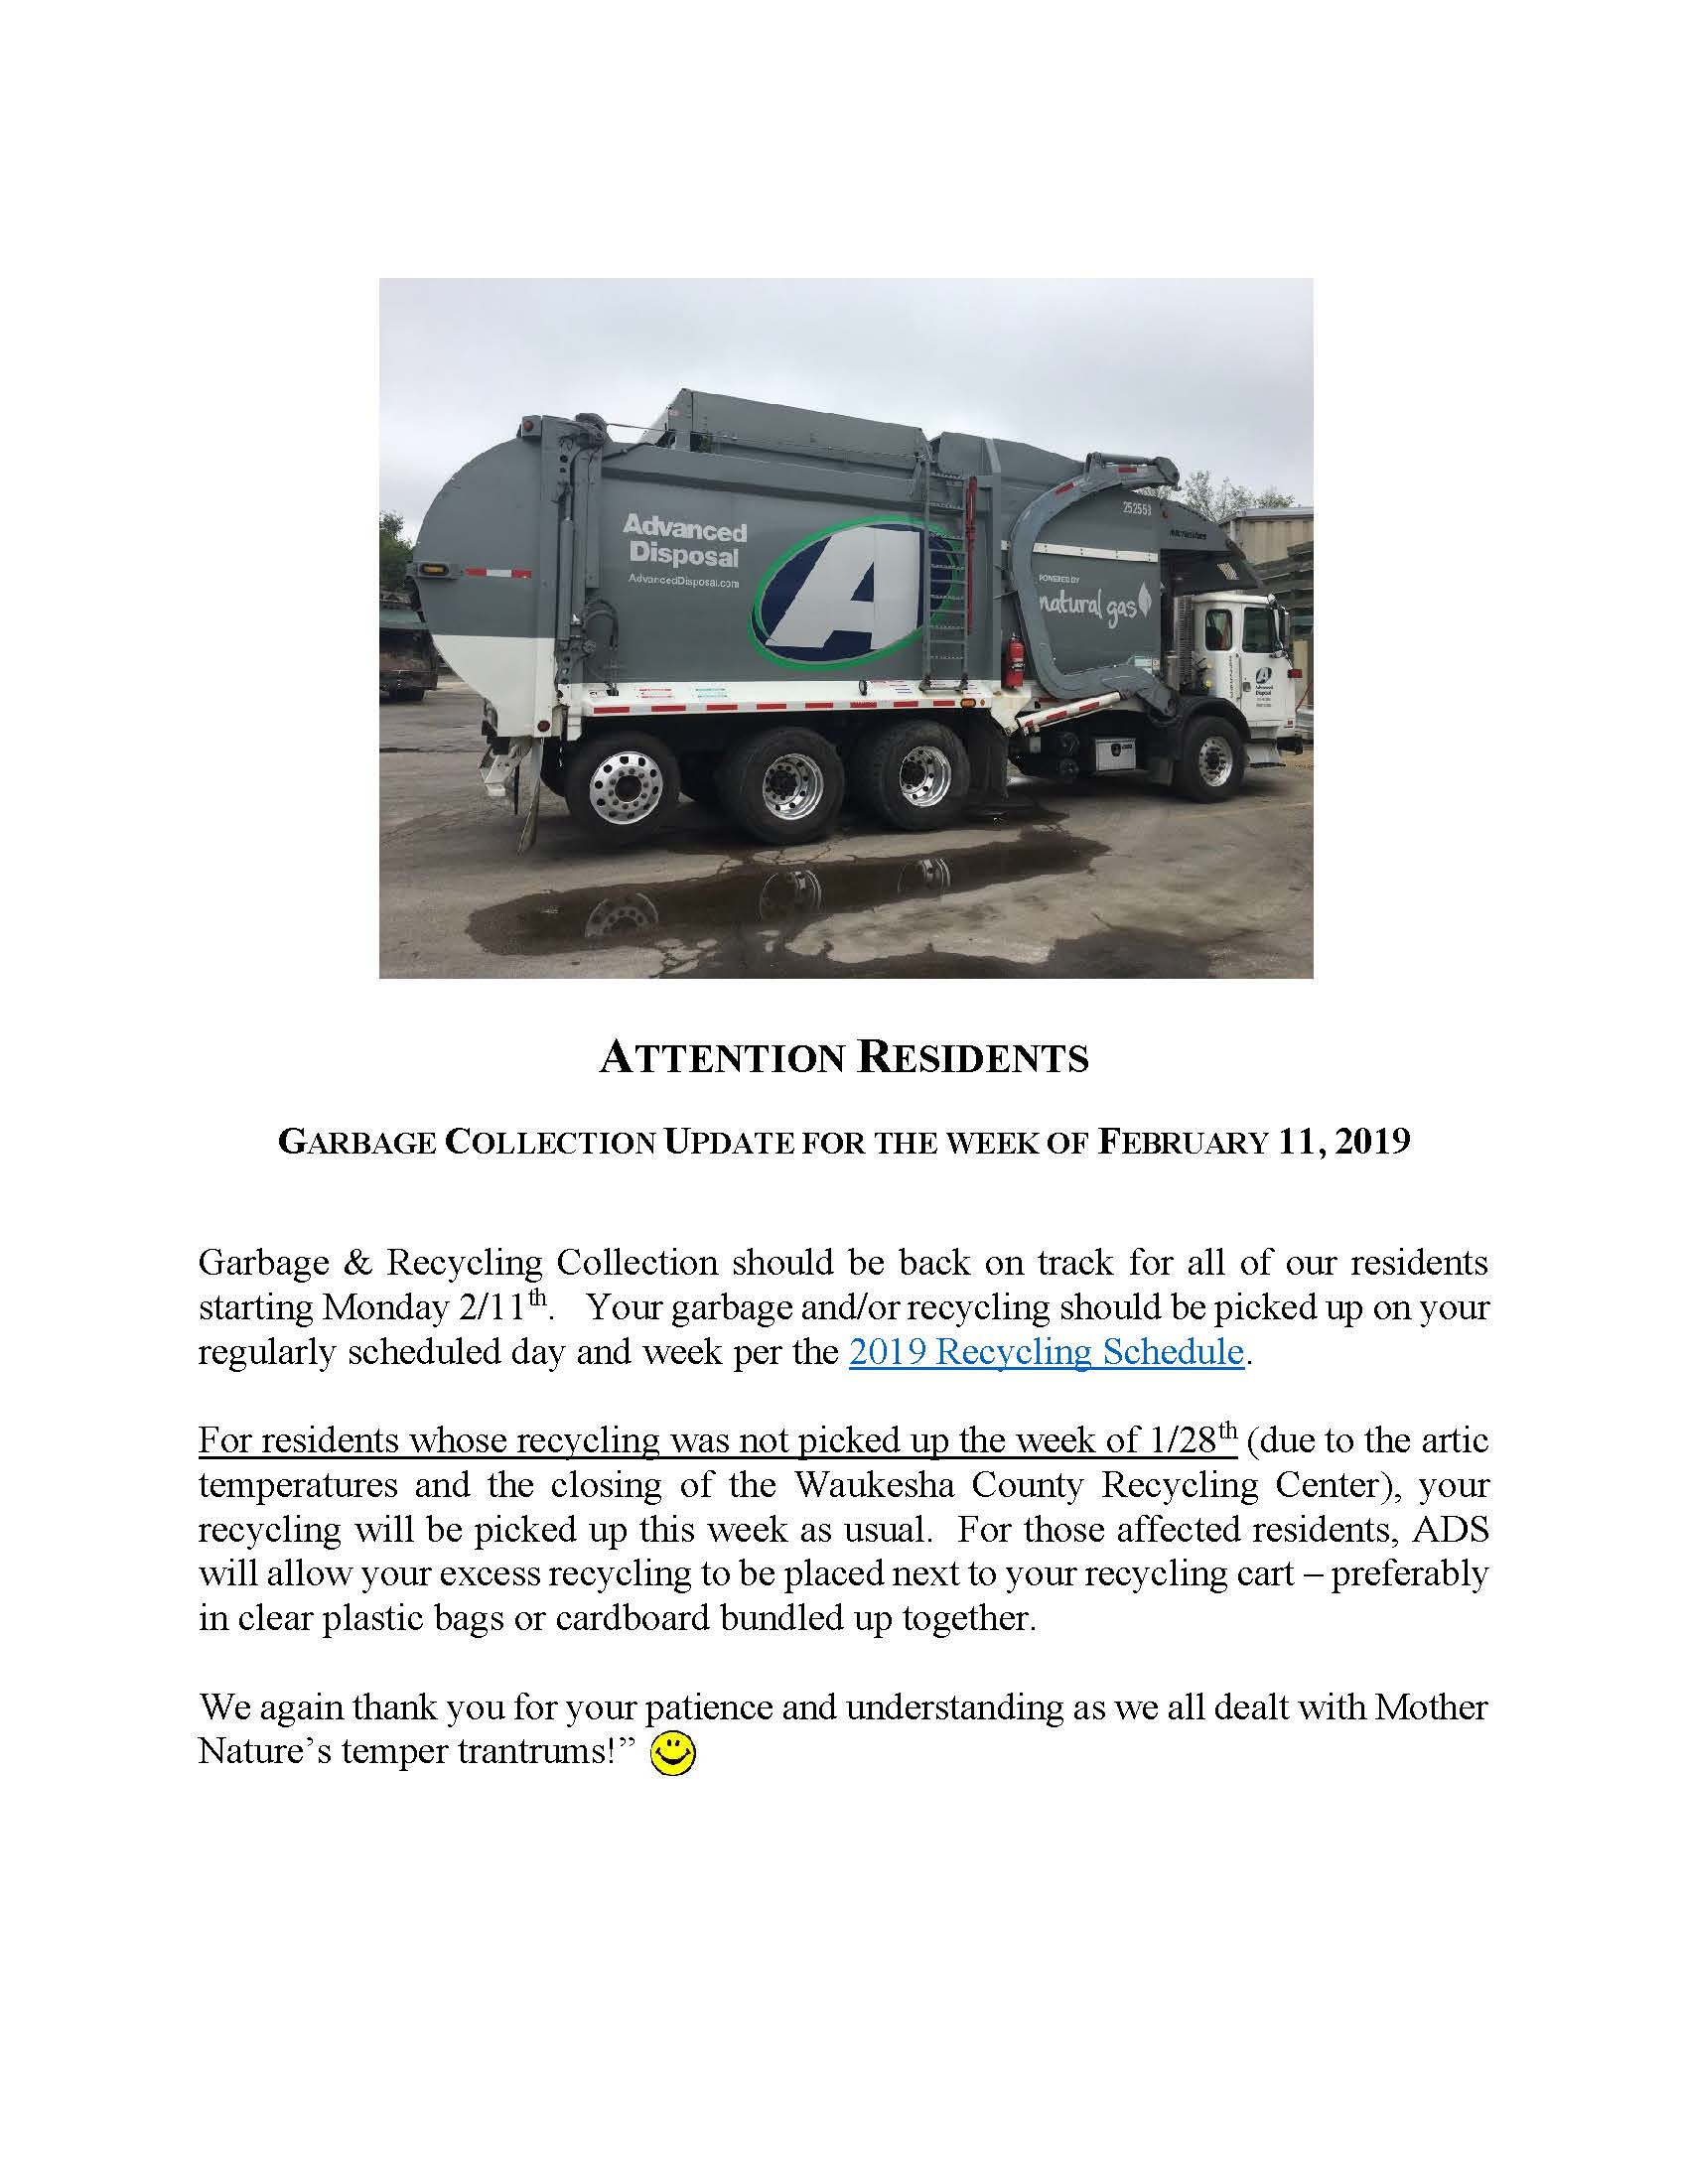 Attention Residents Garbage Update 2.11.19